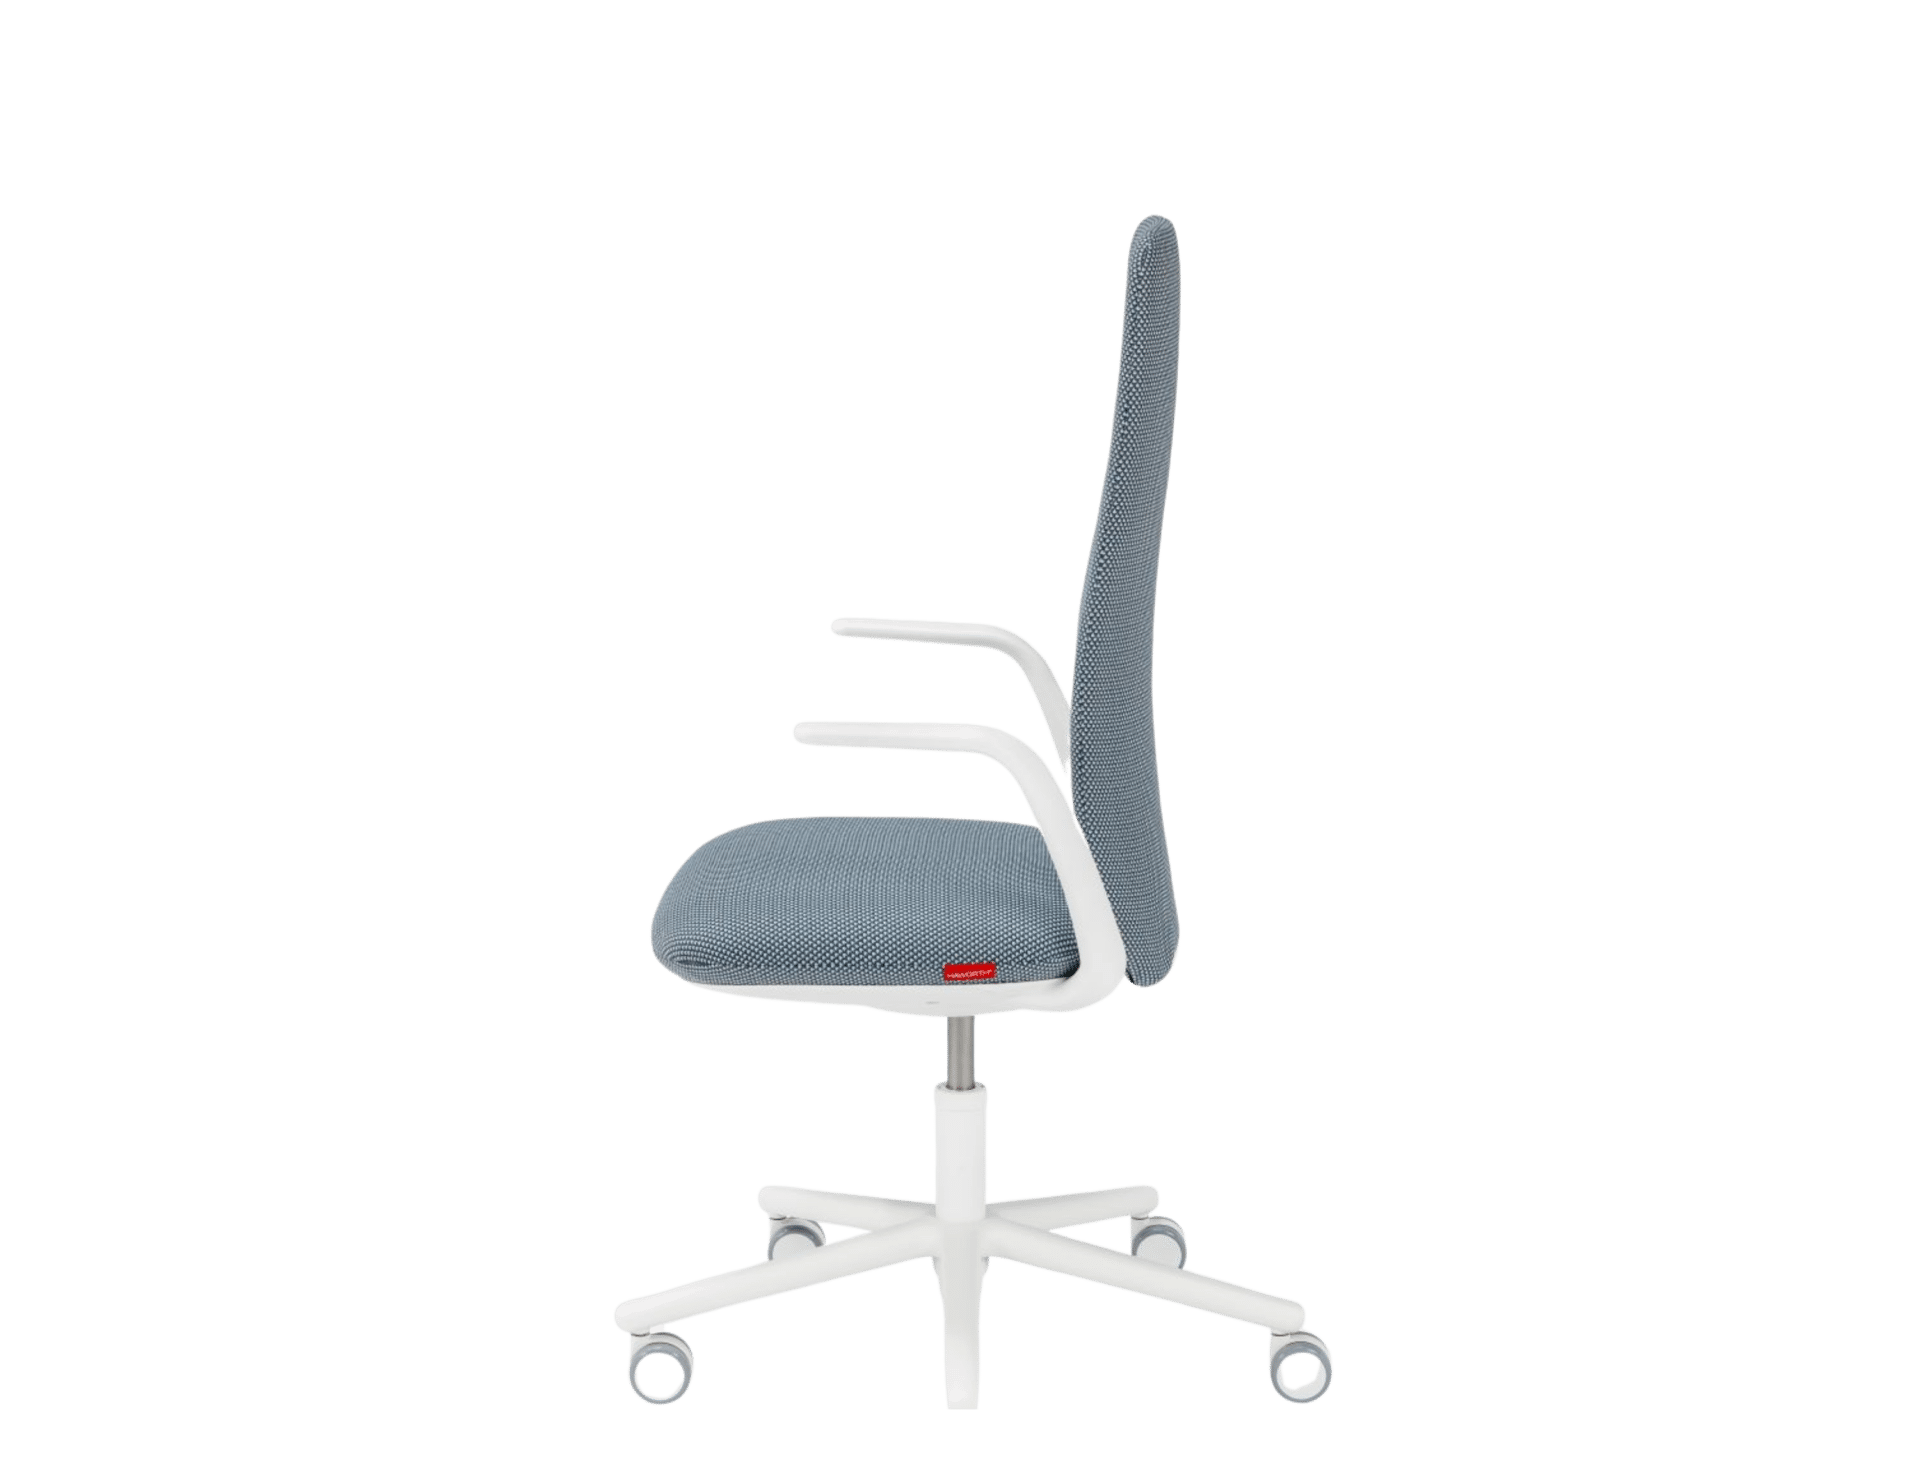 products_nia_chair_6